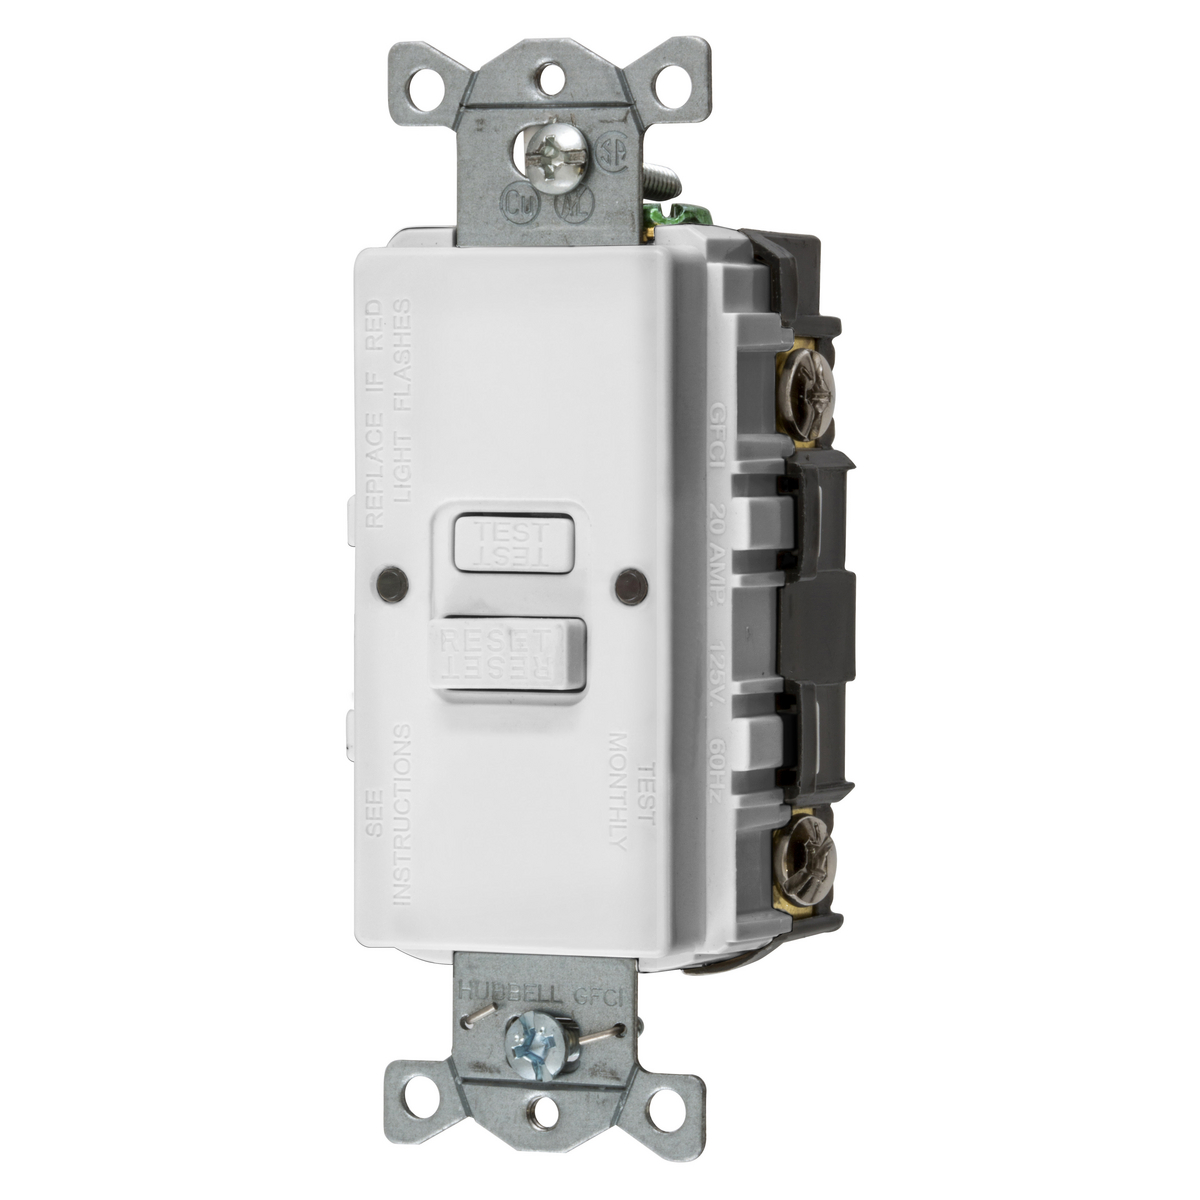 Hubbell GFBFST20W 20 Amp GFCI Receptacle